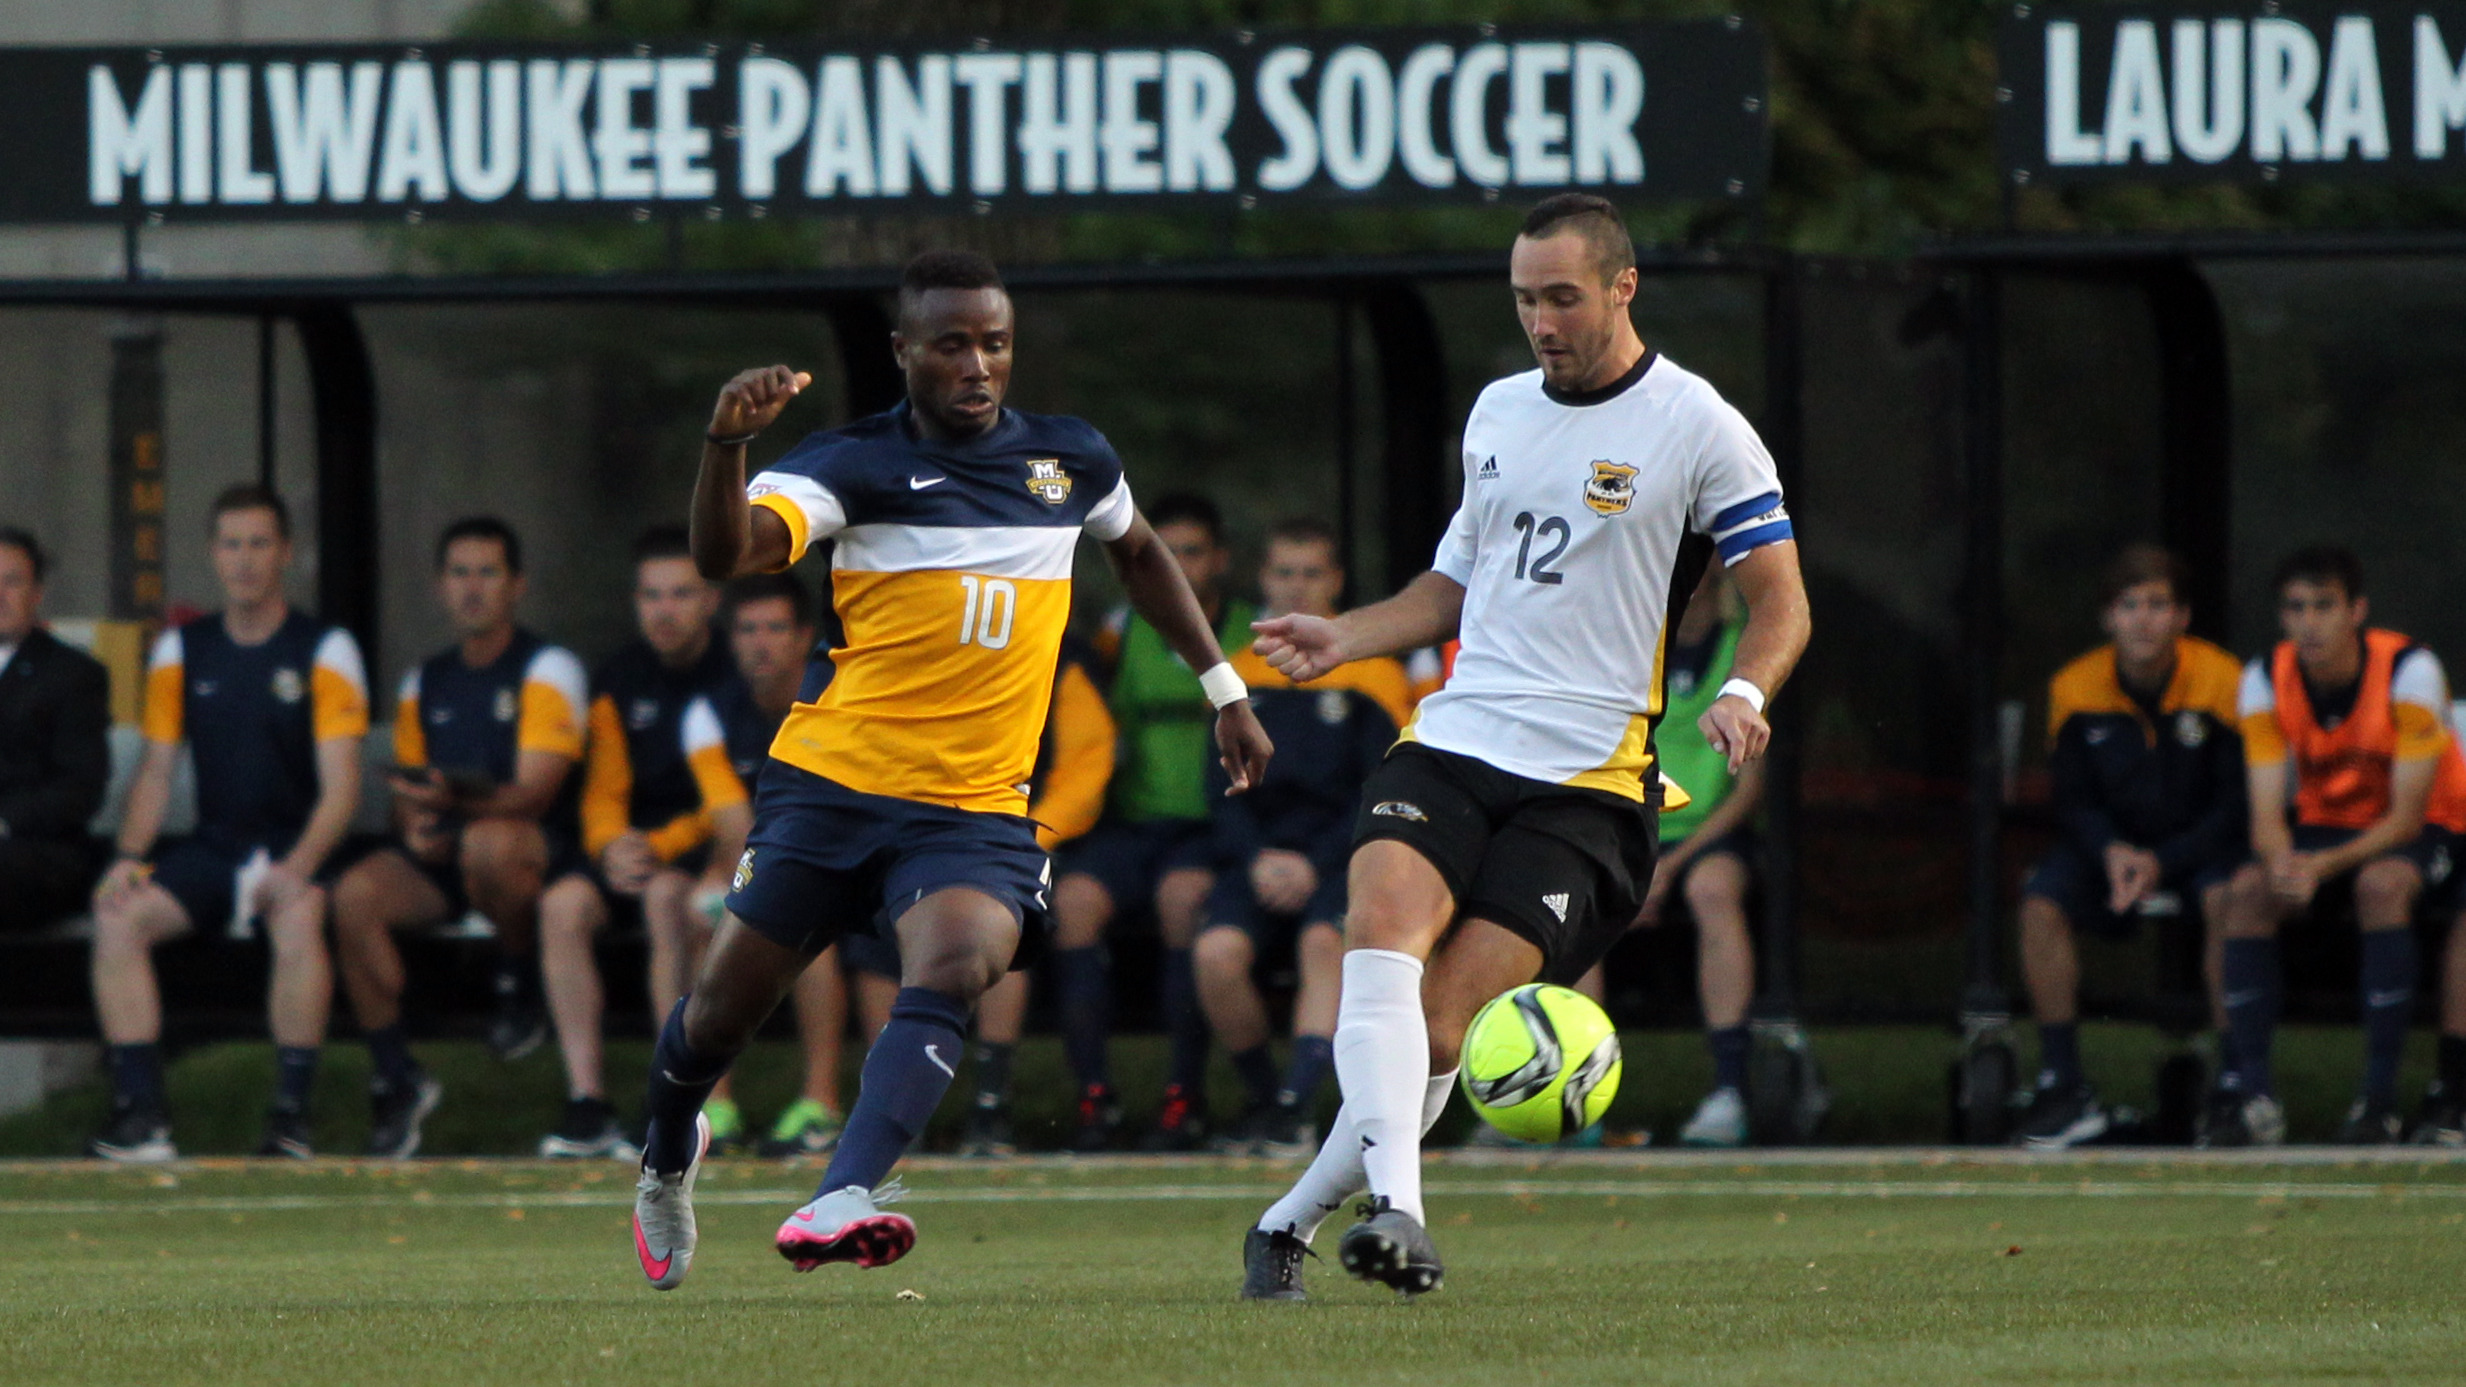 C. Nortey's goal was the 29th of his career.